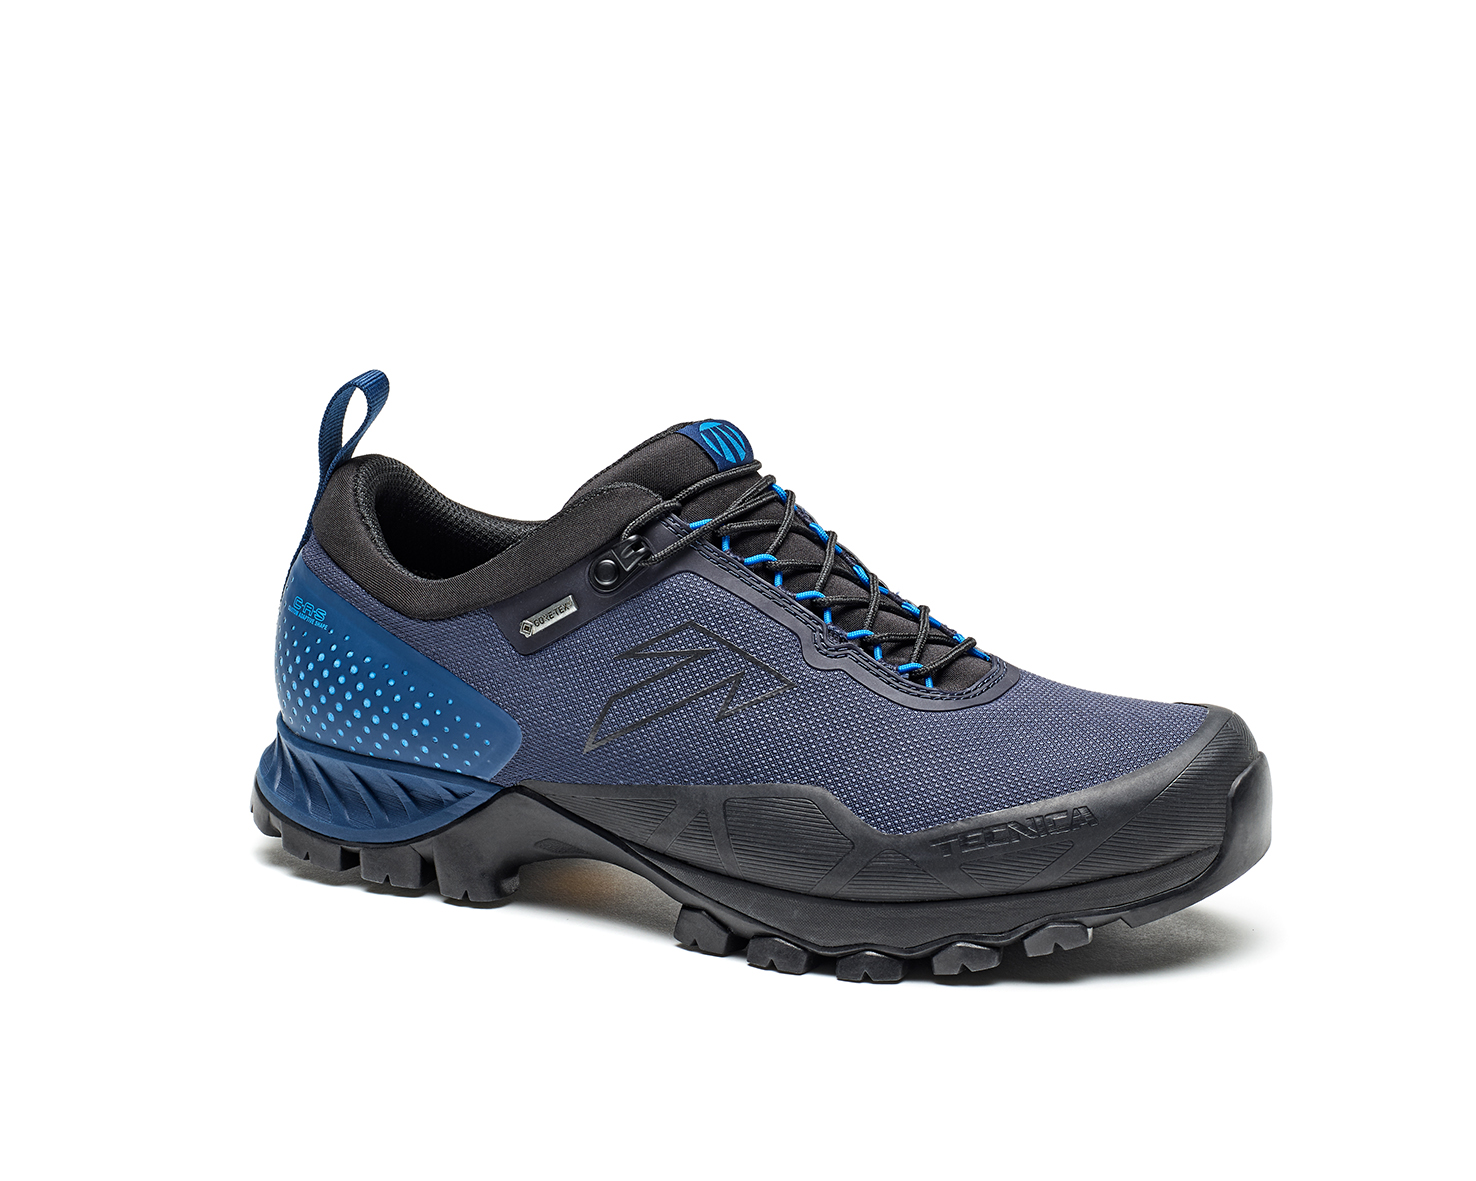 TECNICA PLASMA S HIKING SHOES